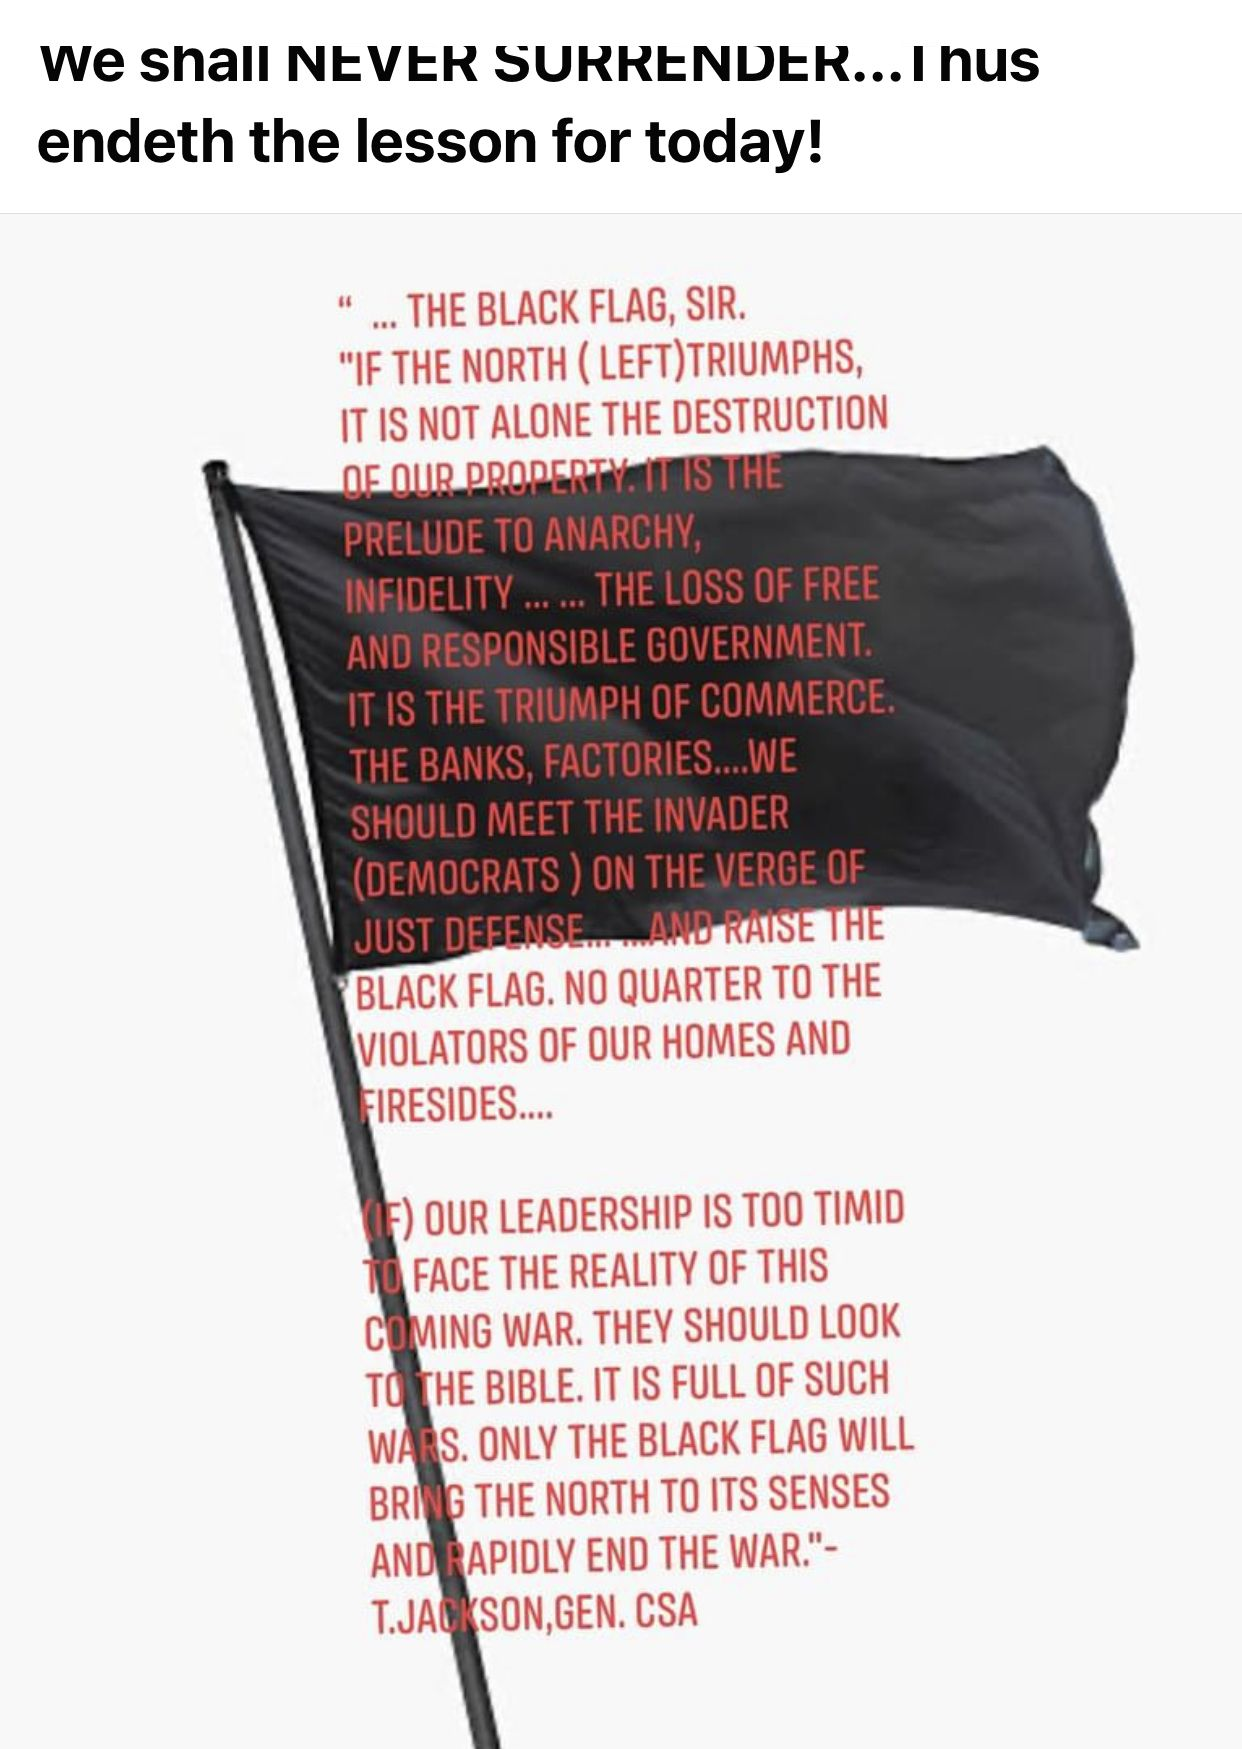 Pin By Macgregor Tactical Llc On Freedom In 2021 No Response Lesson Black Flag